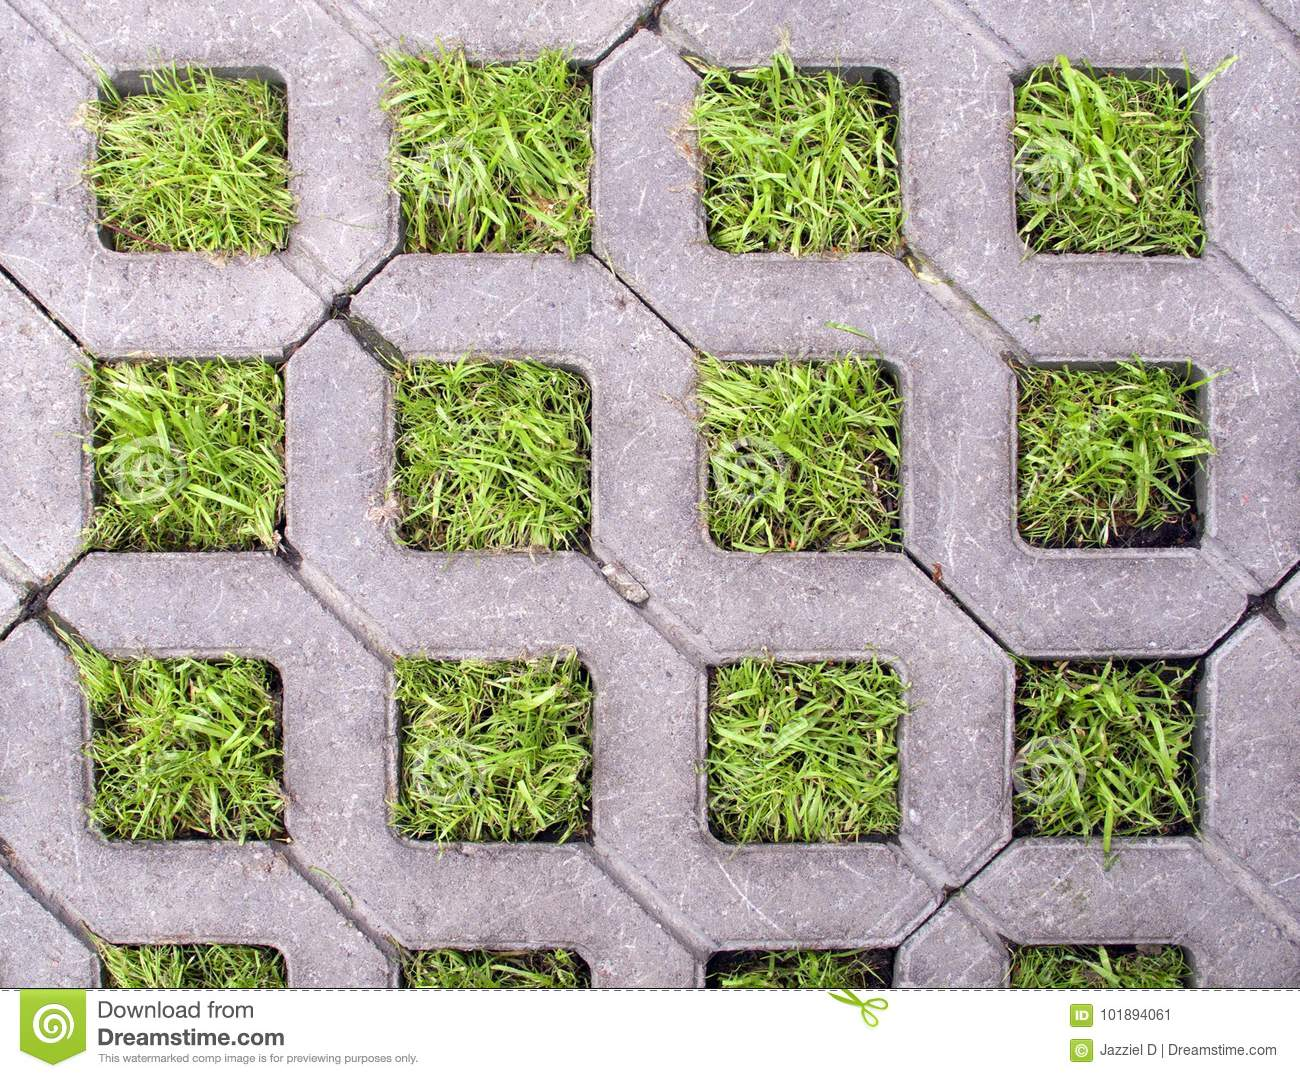 Concrete Square Cells With Living Grass